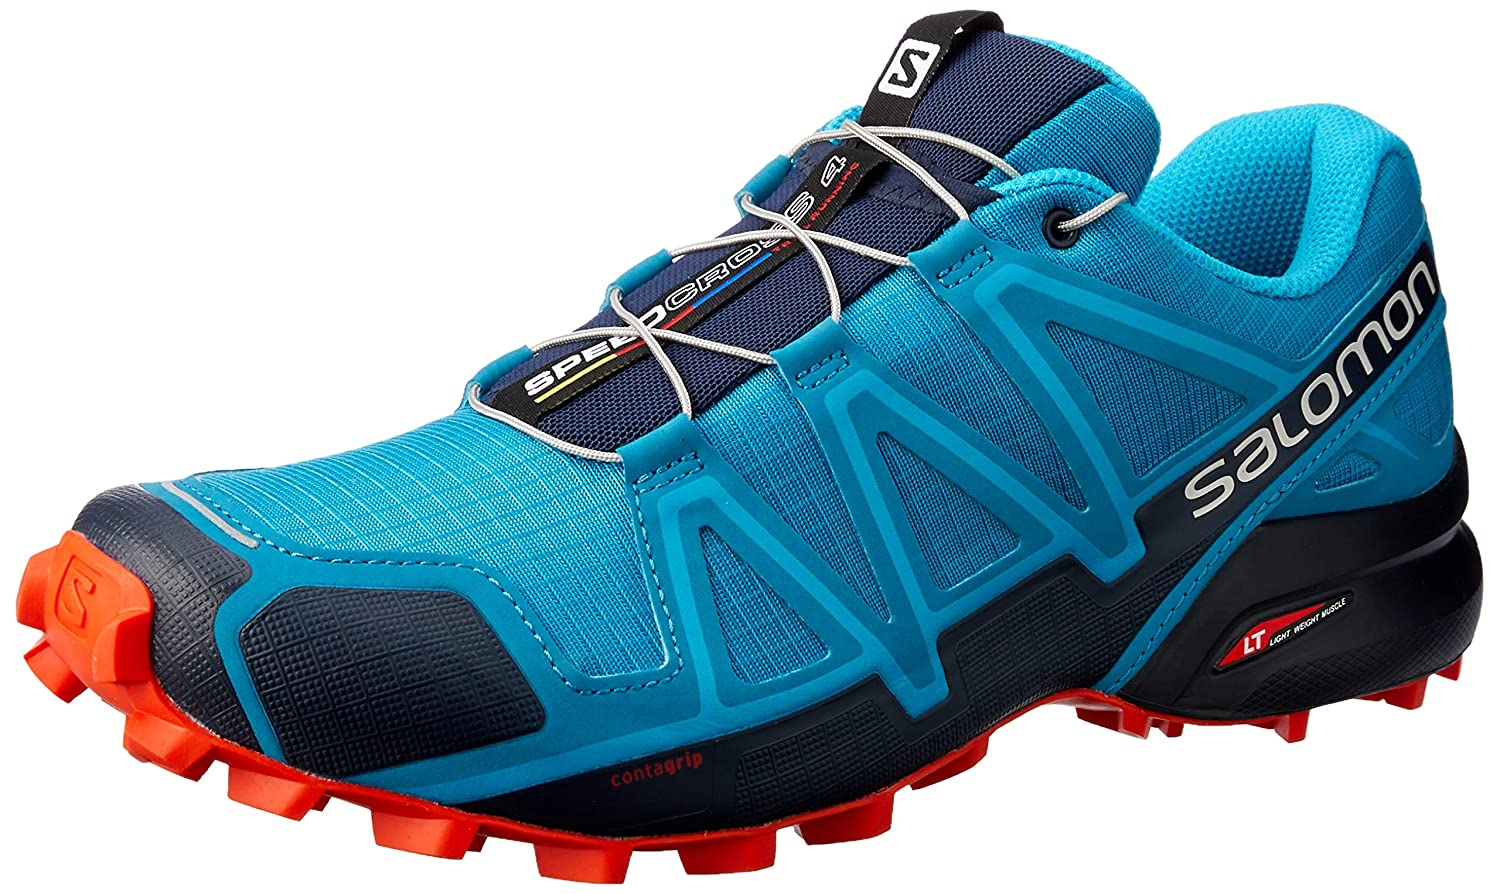 SALOMON LAUFSCHUHE SPEEDCROSS 4 Gr 49 13 Trail Running